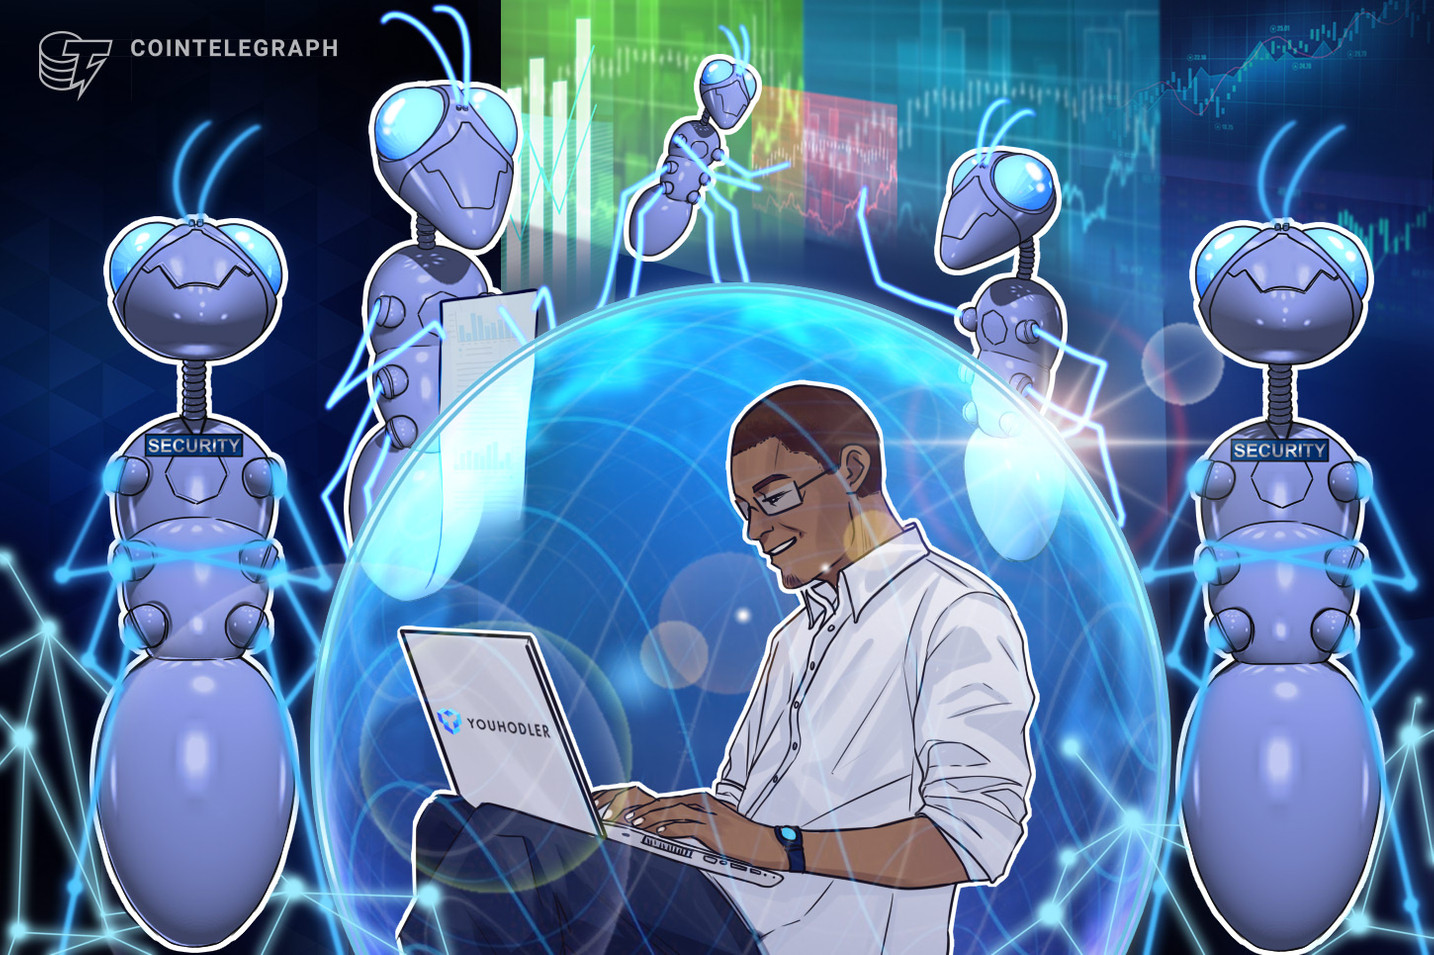 Blockchain platform offers security and accountability that DeFi cannot